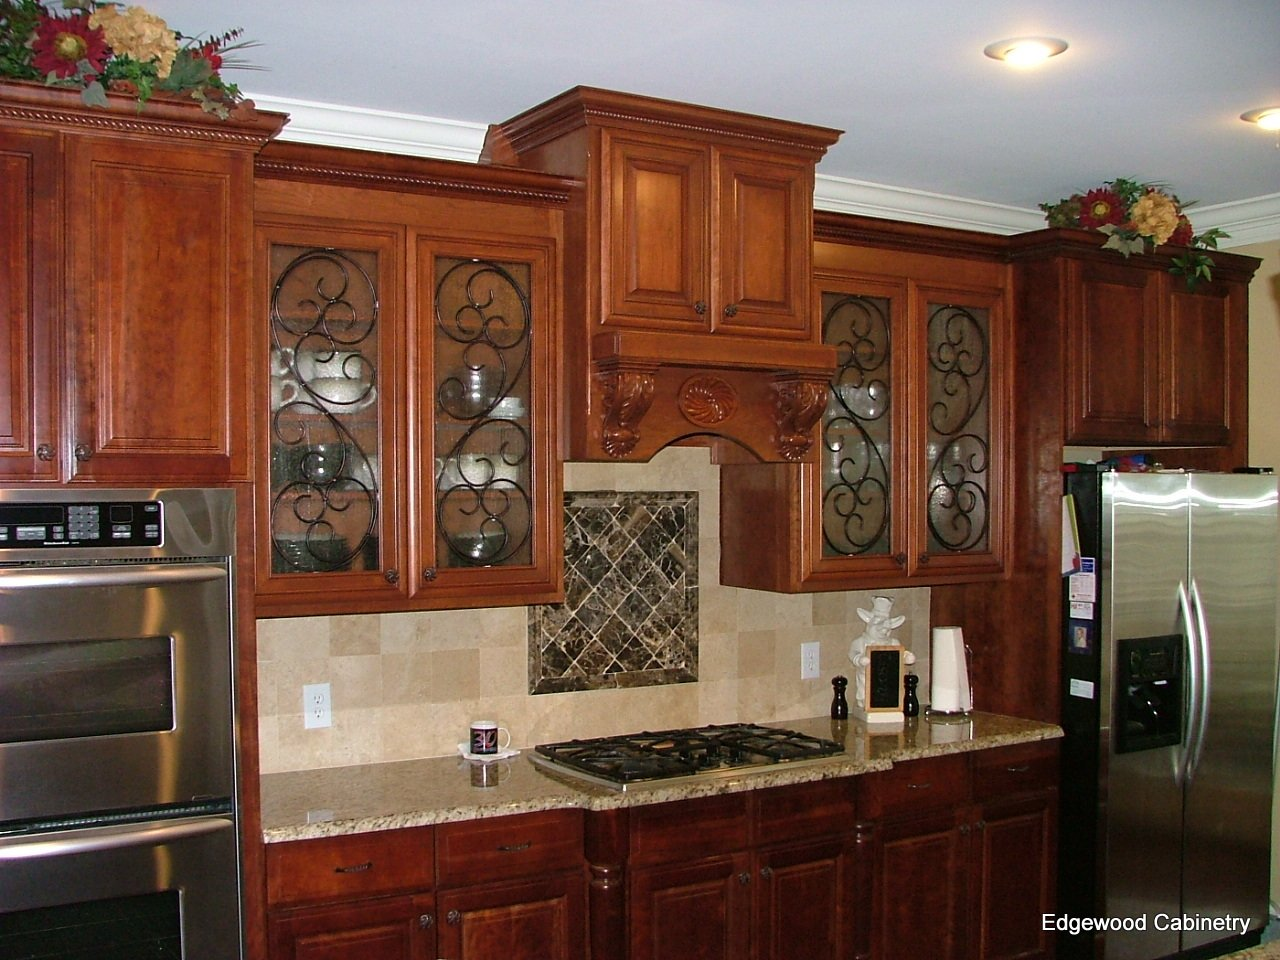 How Glass Front Cabinets Can Enhance Your Kitchen! Edgewood Cabinetry